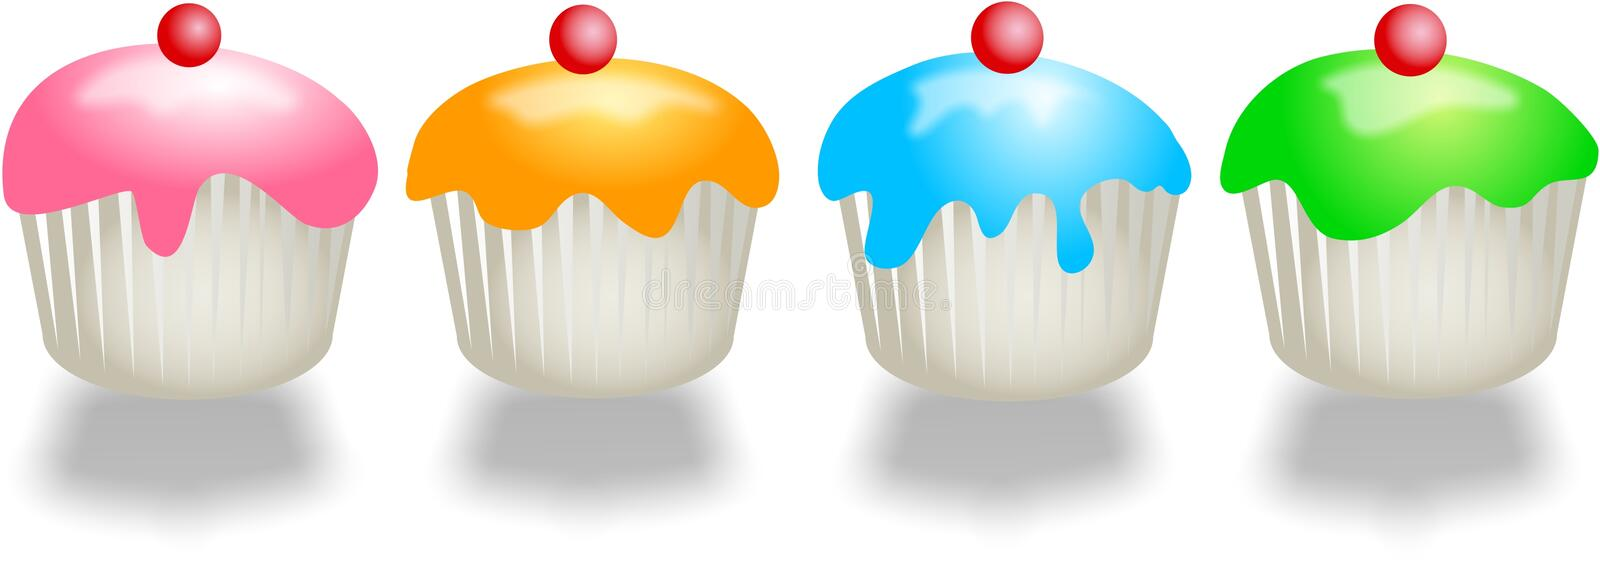 Download Coloured Buns Royalty Free Stock Images - Image: 60529